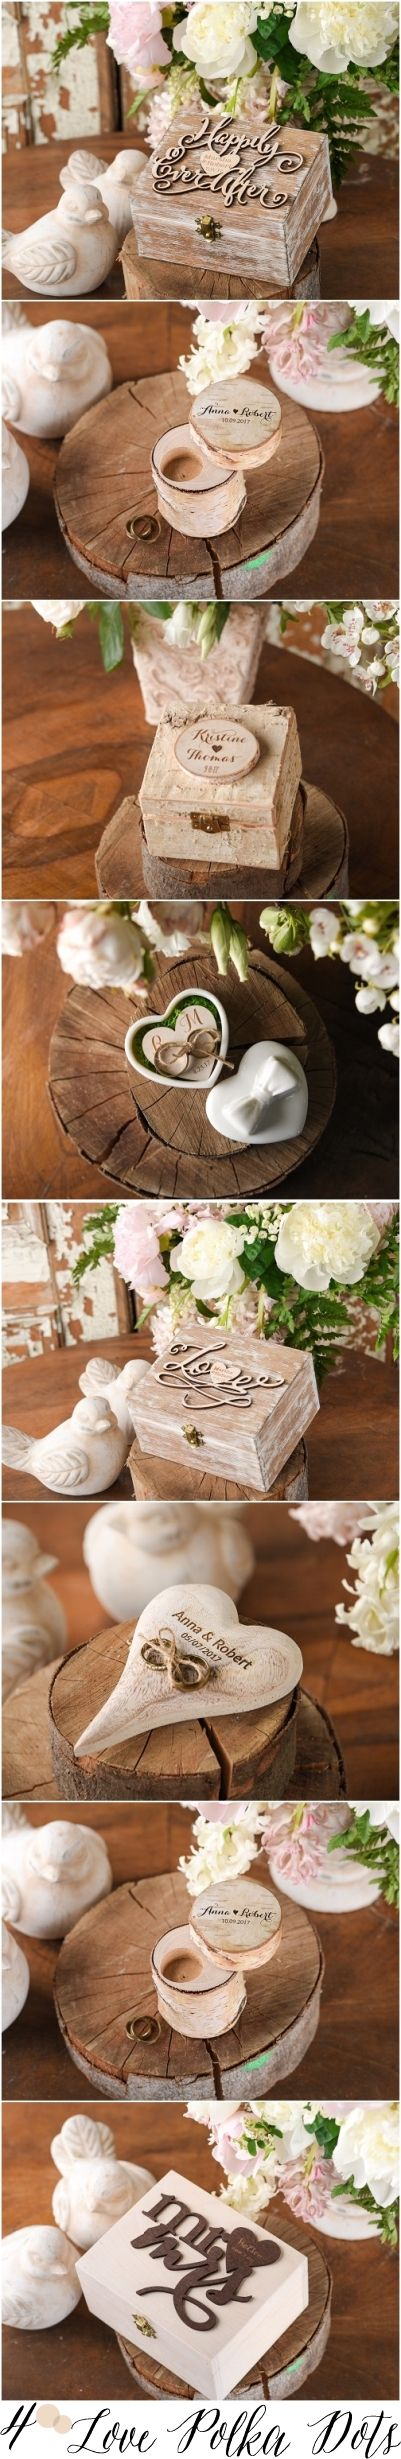 Rustic country wooden wedding ring box #rusticwedding #countrywedding #weddingideas